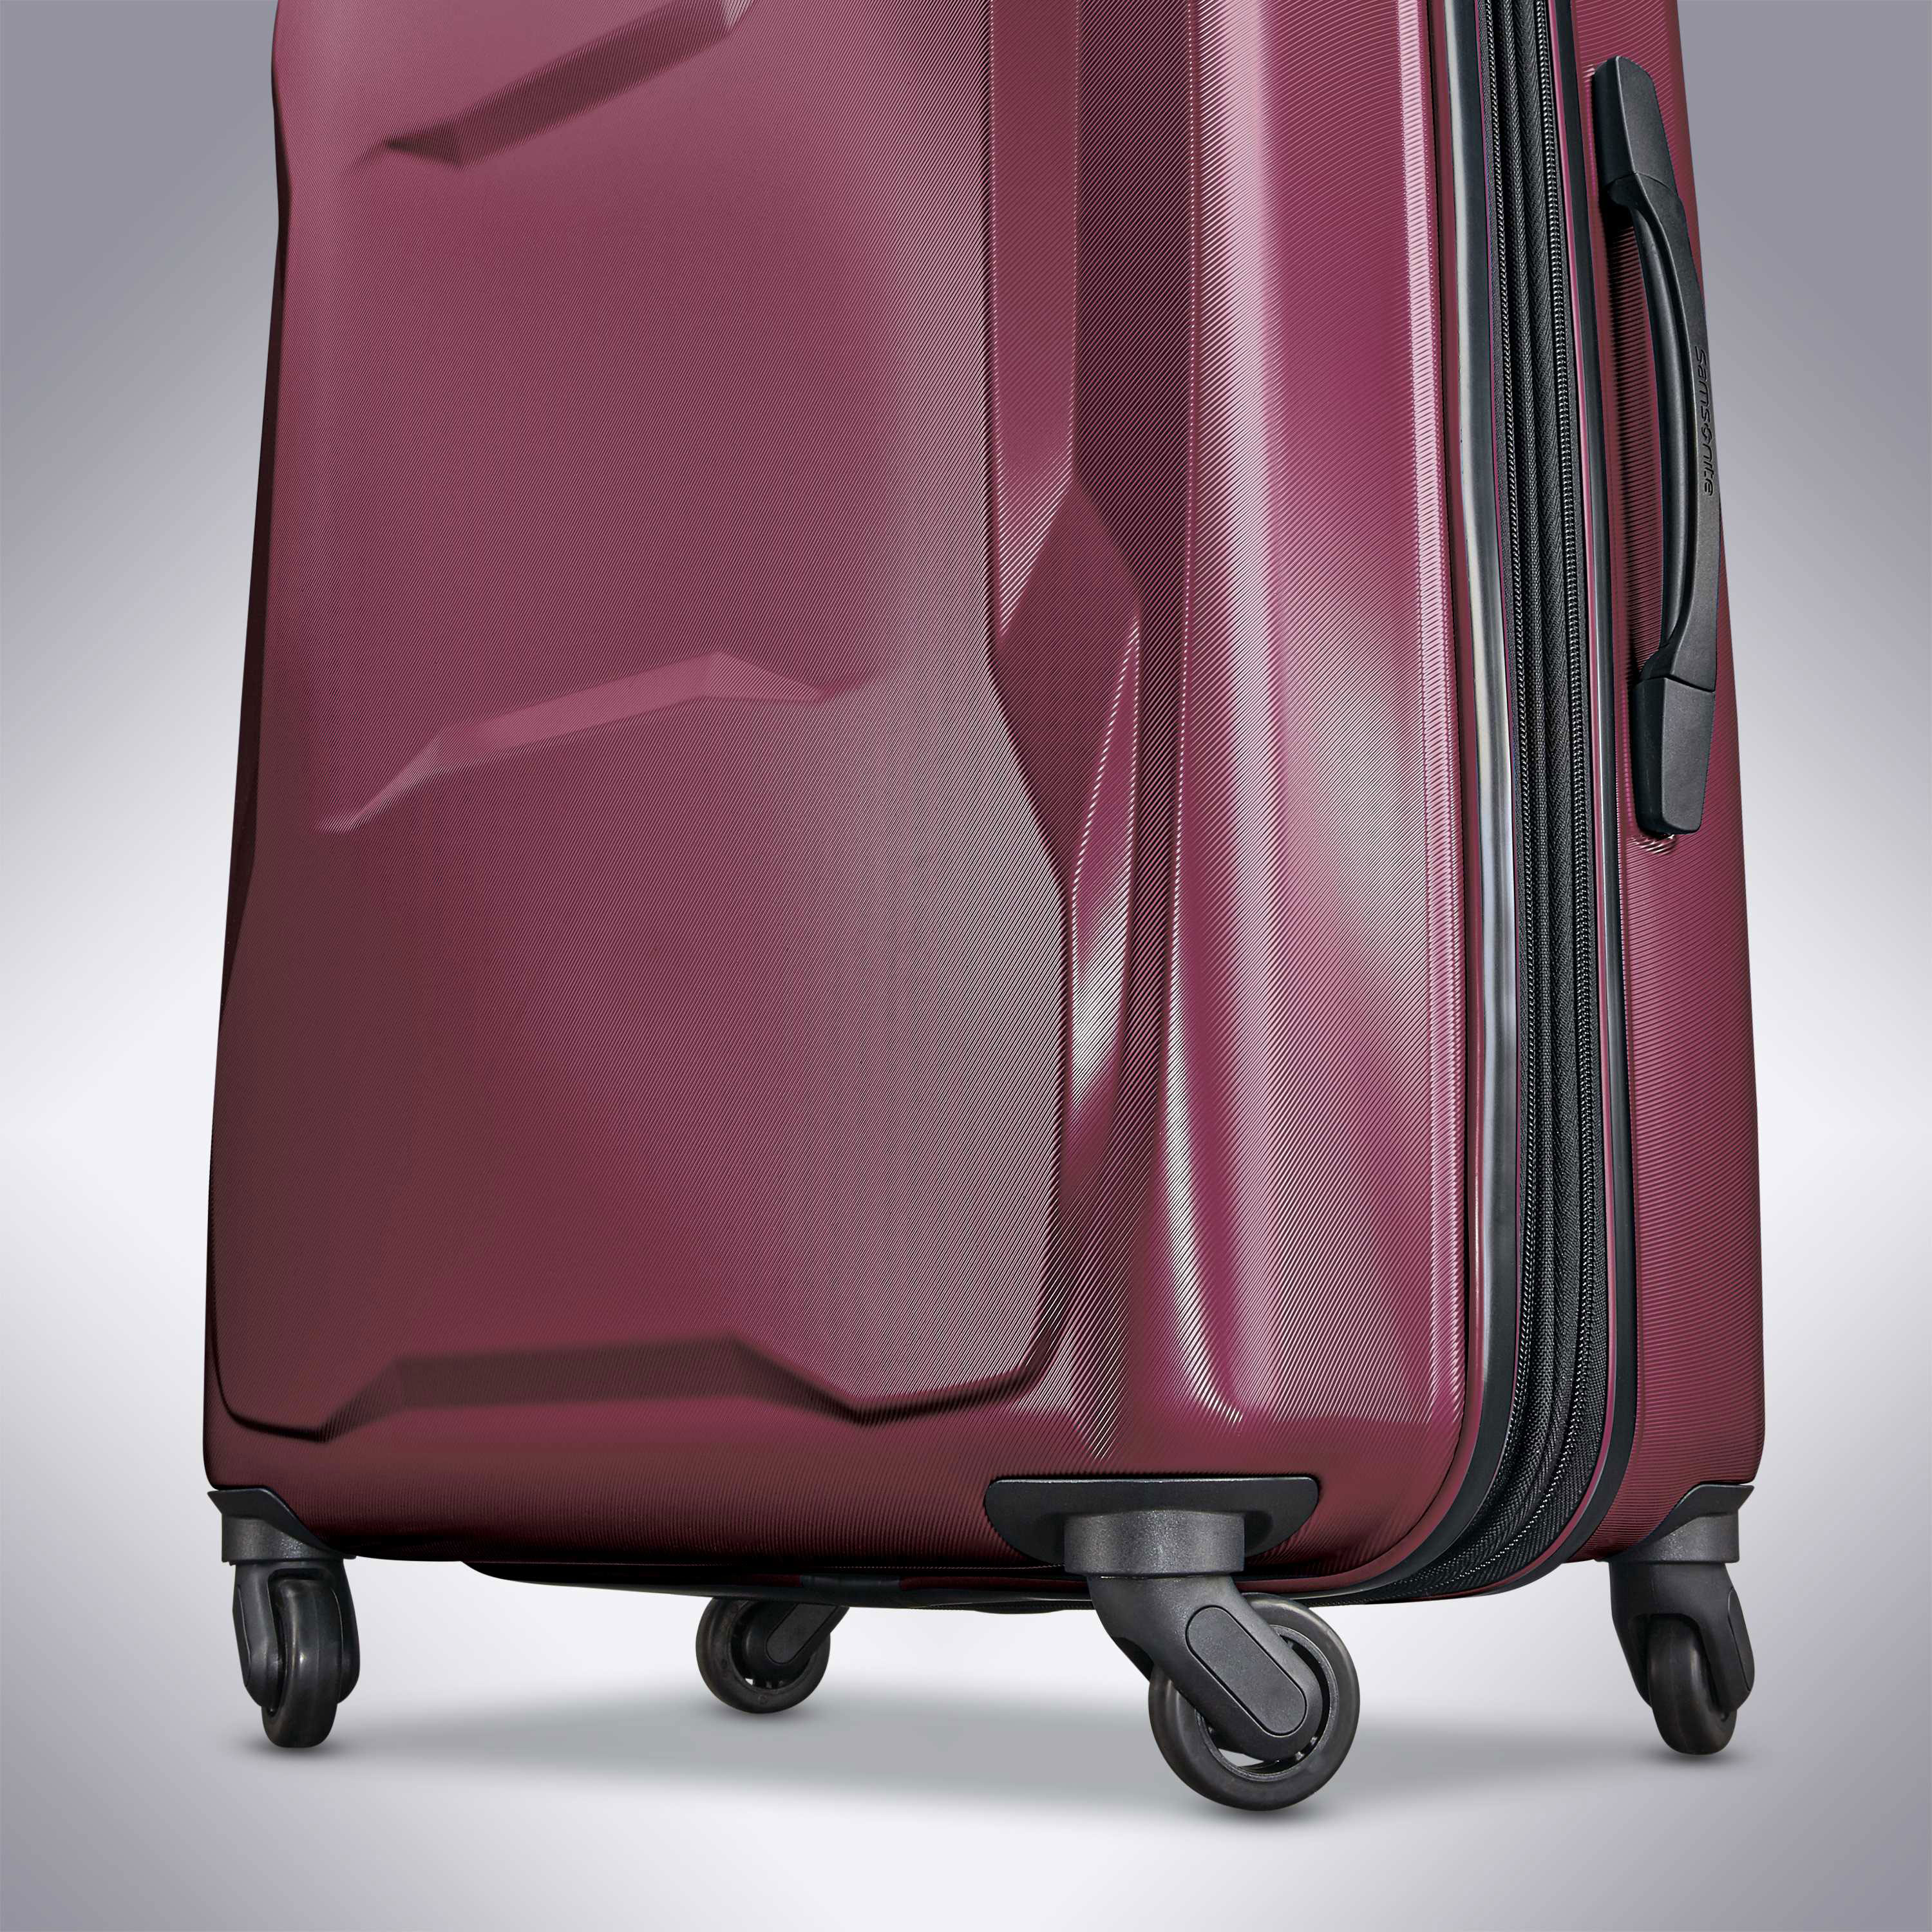 Samsonite-Pivot-3-Piece-Set-Luggage thumbnail 14